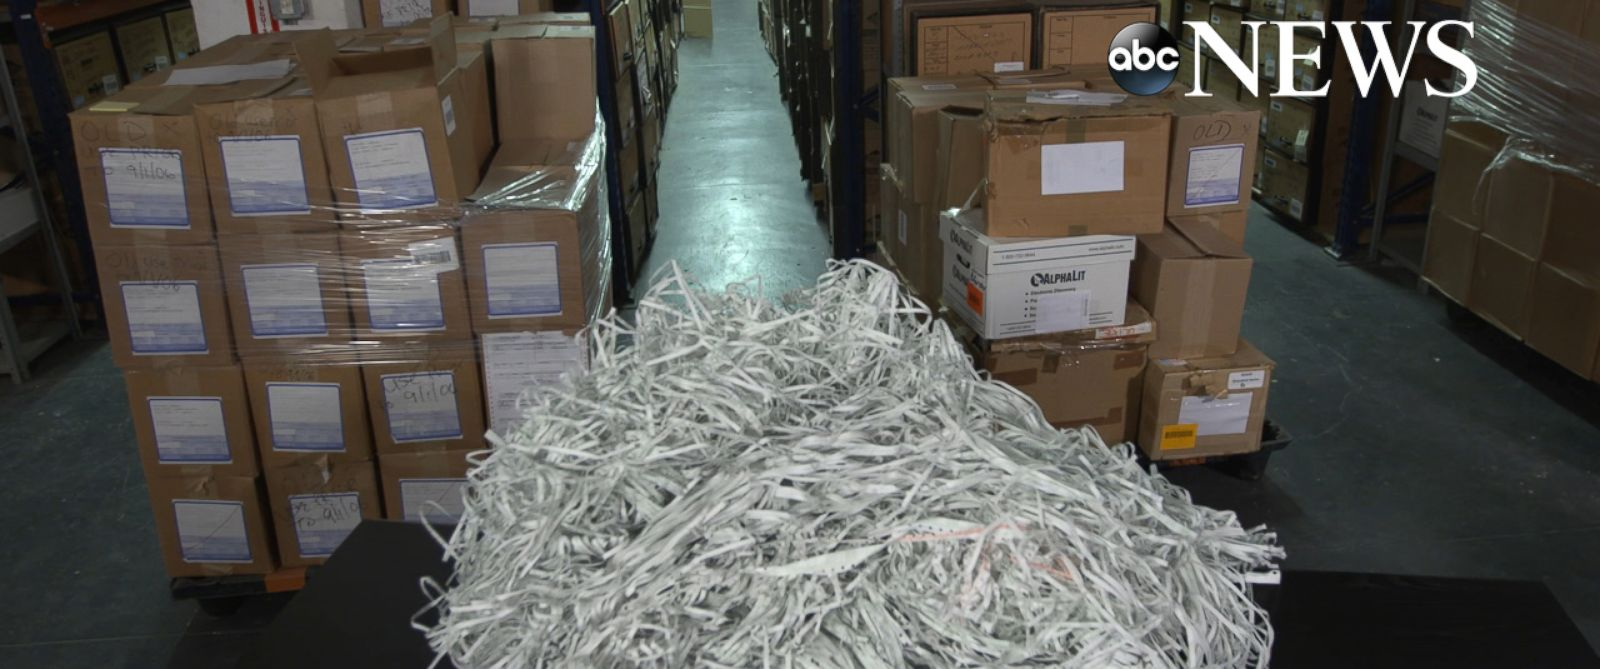 PHOTO: A warehouse in New York holds evidence against Bernie Madoff, including a huge pile of shredded documents.